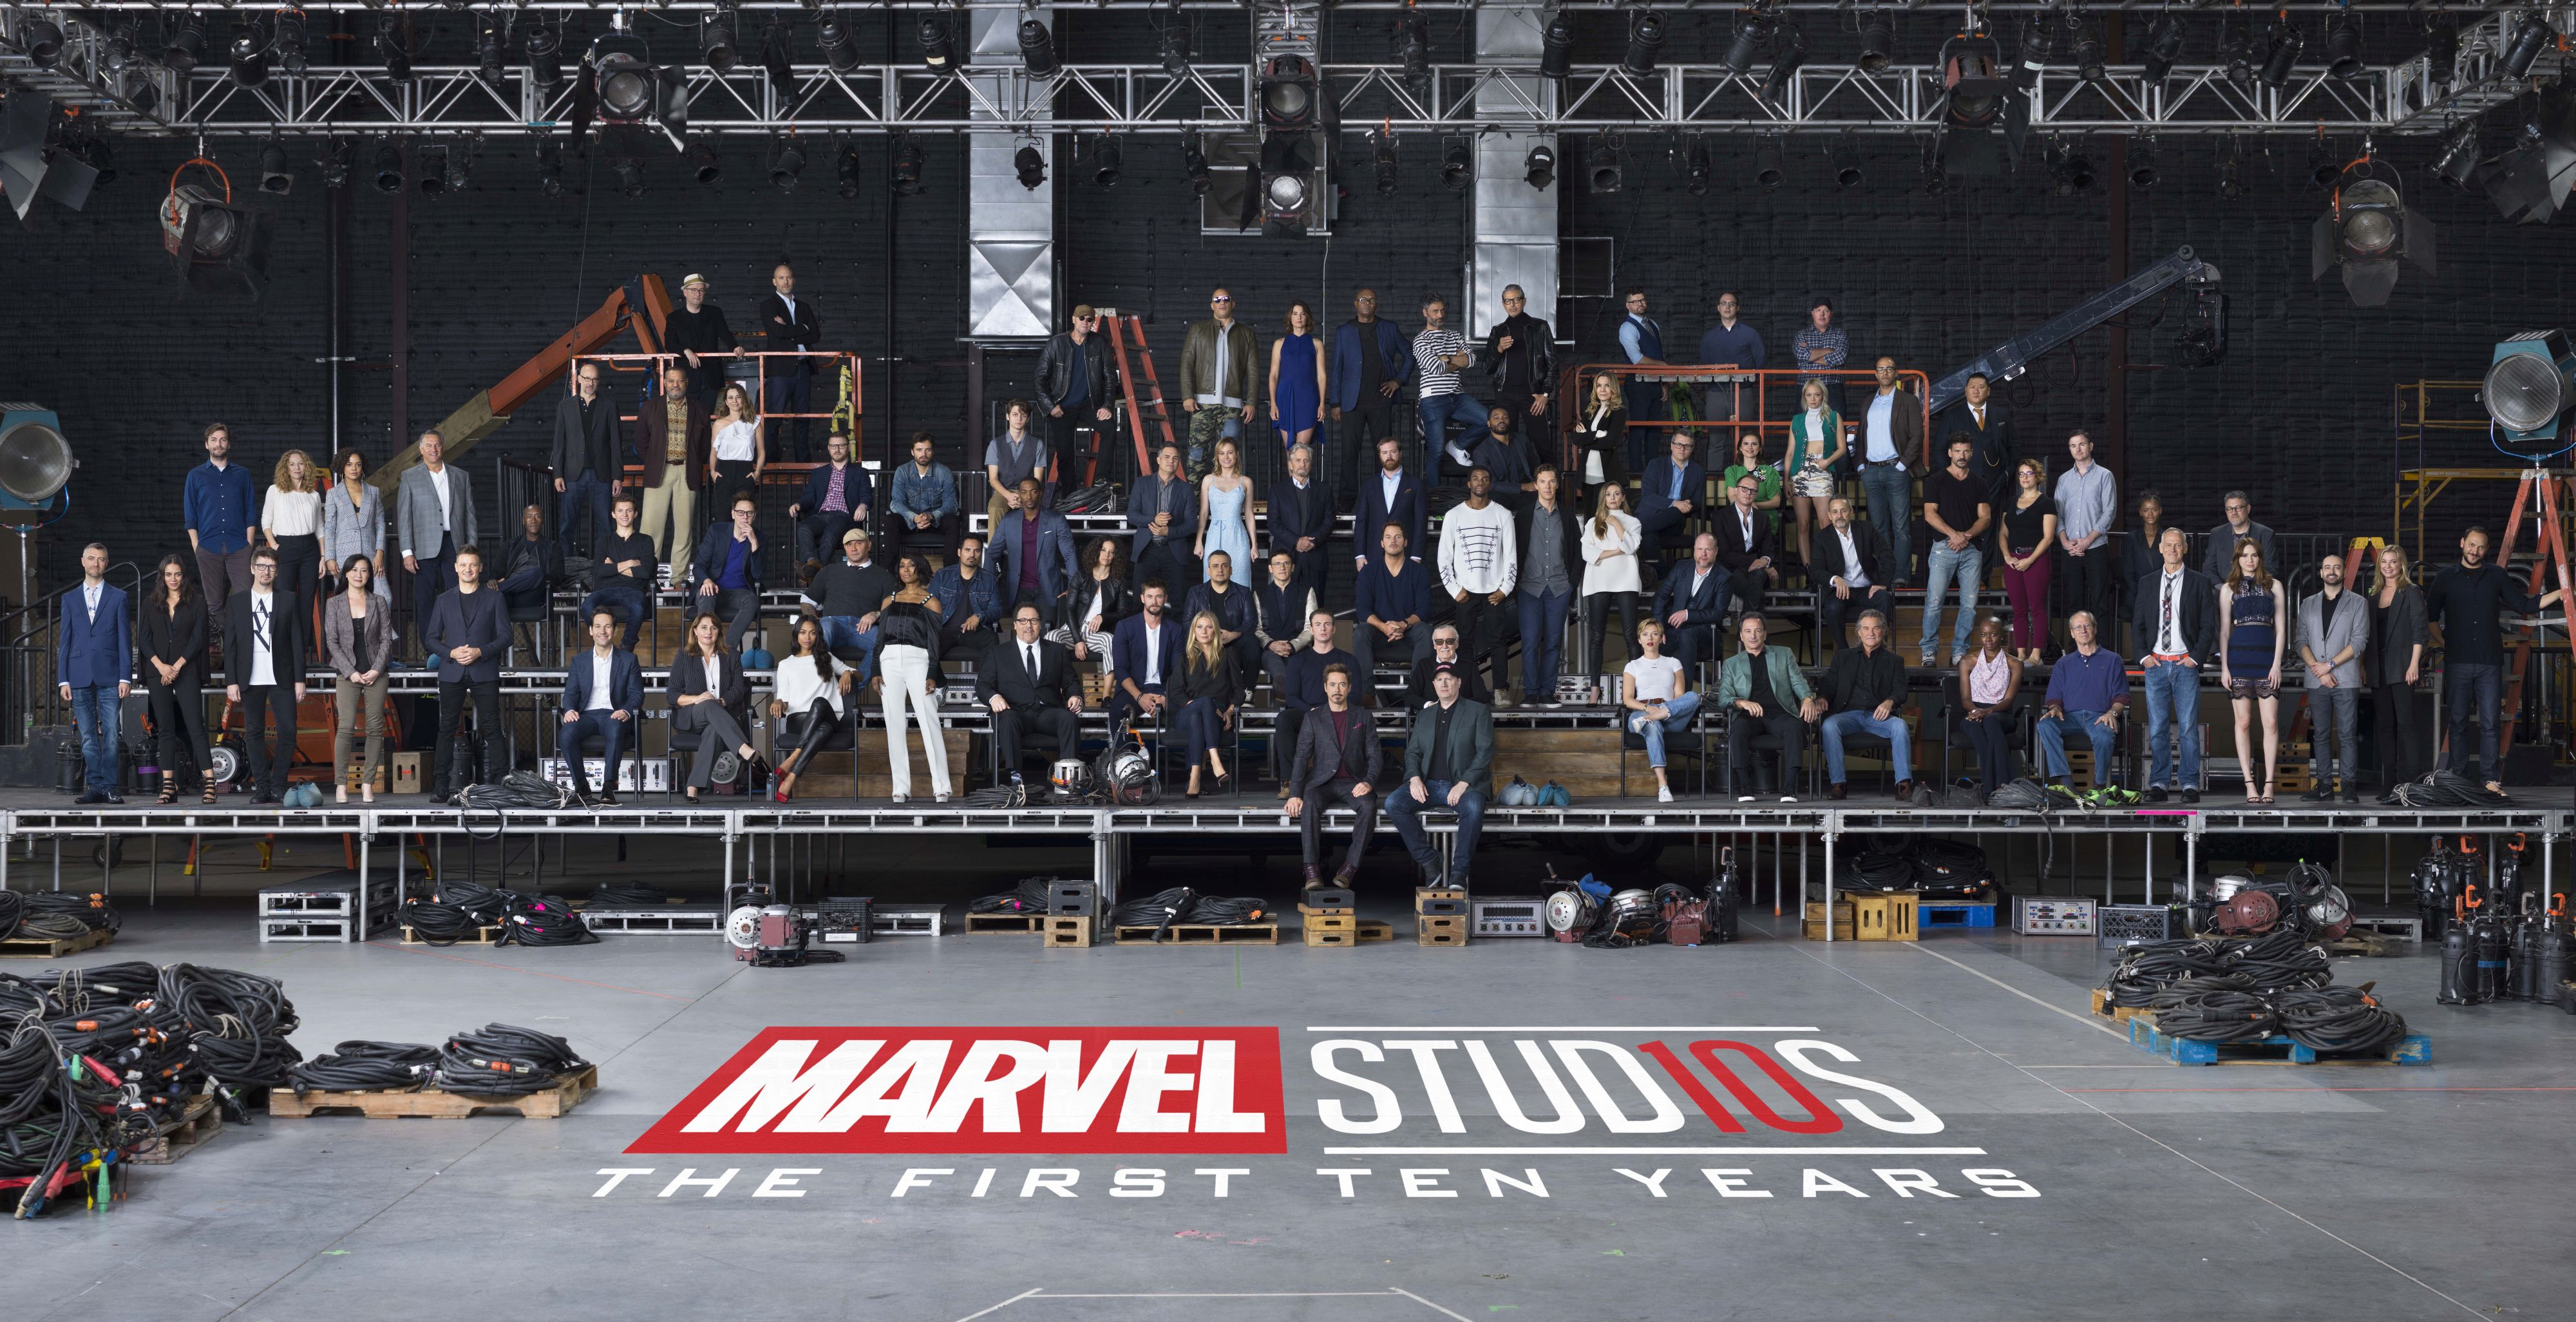 "Marvel Studios ""The First Ten Years"" Class Photo Front Row L to R: Sean Gunn (Kraglin), Hannah John-Kamen (Ghost), Director Scott Derrickson, Executive Producer Trinh Tran, Jeremy Renner (Hawkeye), Paul Rudd (Ant-Man), EVP, Physical Production Victoria Alonso, Zoe Saldana (Gamora), Angela Bassett (Ramonda), Director/Actor Jon Favreau (Happy Hogan), Chris Hemsworth (Thor), Gwyneth Paltrow (Pepper Potts), Chris Evans (Captain America), Robert Downey Jr. (Iron Man), Executive Producer/Writer Stan Lee, President of Marvel Studios Kevin Feige, Scarlett Johansson (Black Widow), Co-President of Marvel Studios Louis D'Esposito, Kurt Russell (Ego), Danai Gurira (Okoye), William Hurt (Thaddeus Ross), Director Alan Taylor, Karen Gillan (Nebula), Executive Producer Brad Winderbaum, Emily VanCamp (Sharon Carter), Director Louis Letterier Second Row L to R: Director Jon Watts, Casting Director Sarah Finn, Tessa Thompson (Valkyrie), VP, Physical Production David Grant, Don Cheadle (War Machine), Tom Holland (Spider-Man), Director James Gunn, Dave Bautista (Drax), Michael Peña (Luis), Anthony Mackie (Falcon), Evangeline Lilly (Wasp), Director Joe Russo, Director Anthony Russo, Chris Pratt (Star-Lord), Chadwick Boseman (Black Panther), Benedict Cumberbatch (Doctor Strange), Elizabeth Olsen (Scarlet Witch), Director Joss Whedon, Paul Bettany (Vision), VP, Physical Production Mitchell Bell, Frank Grillo (Crossbones), Director Anna Boden, Director Ryan Fleck, Letitia Wright (Shuri), Editor Jeffrey Ford Third Row L to R: Director Peyton Reed, Laurence Fishburne (Dr. Bill Foster), Linda Cardellini (Laura Barton), Executive Producer Jonathan Schwartz, Sebastian Stan (Winter Soldier), Ty Simpkins (Harley Keener), Mark Ruffalo (Hulk), Brie Larson (Captain Marvel), Michael Douglas (Hank Pym), Executive Producer Stephen Broussard, Director Ryan Coogler, Michelle Pfeiffer (Janet van Dyne), Executive Producer Jeremy Latcham, Hayley Atwell (Peggy Carter), Pom Klementieff (Mantis), Exe"